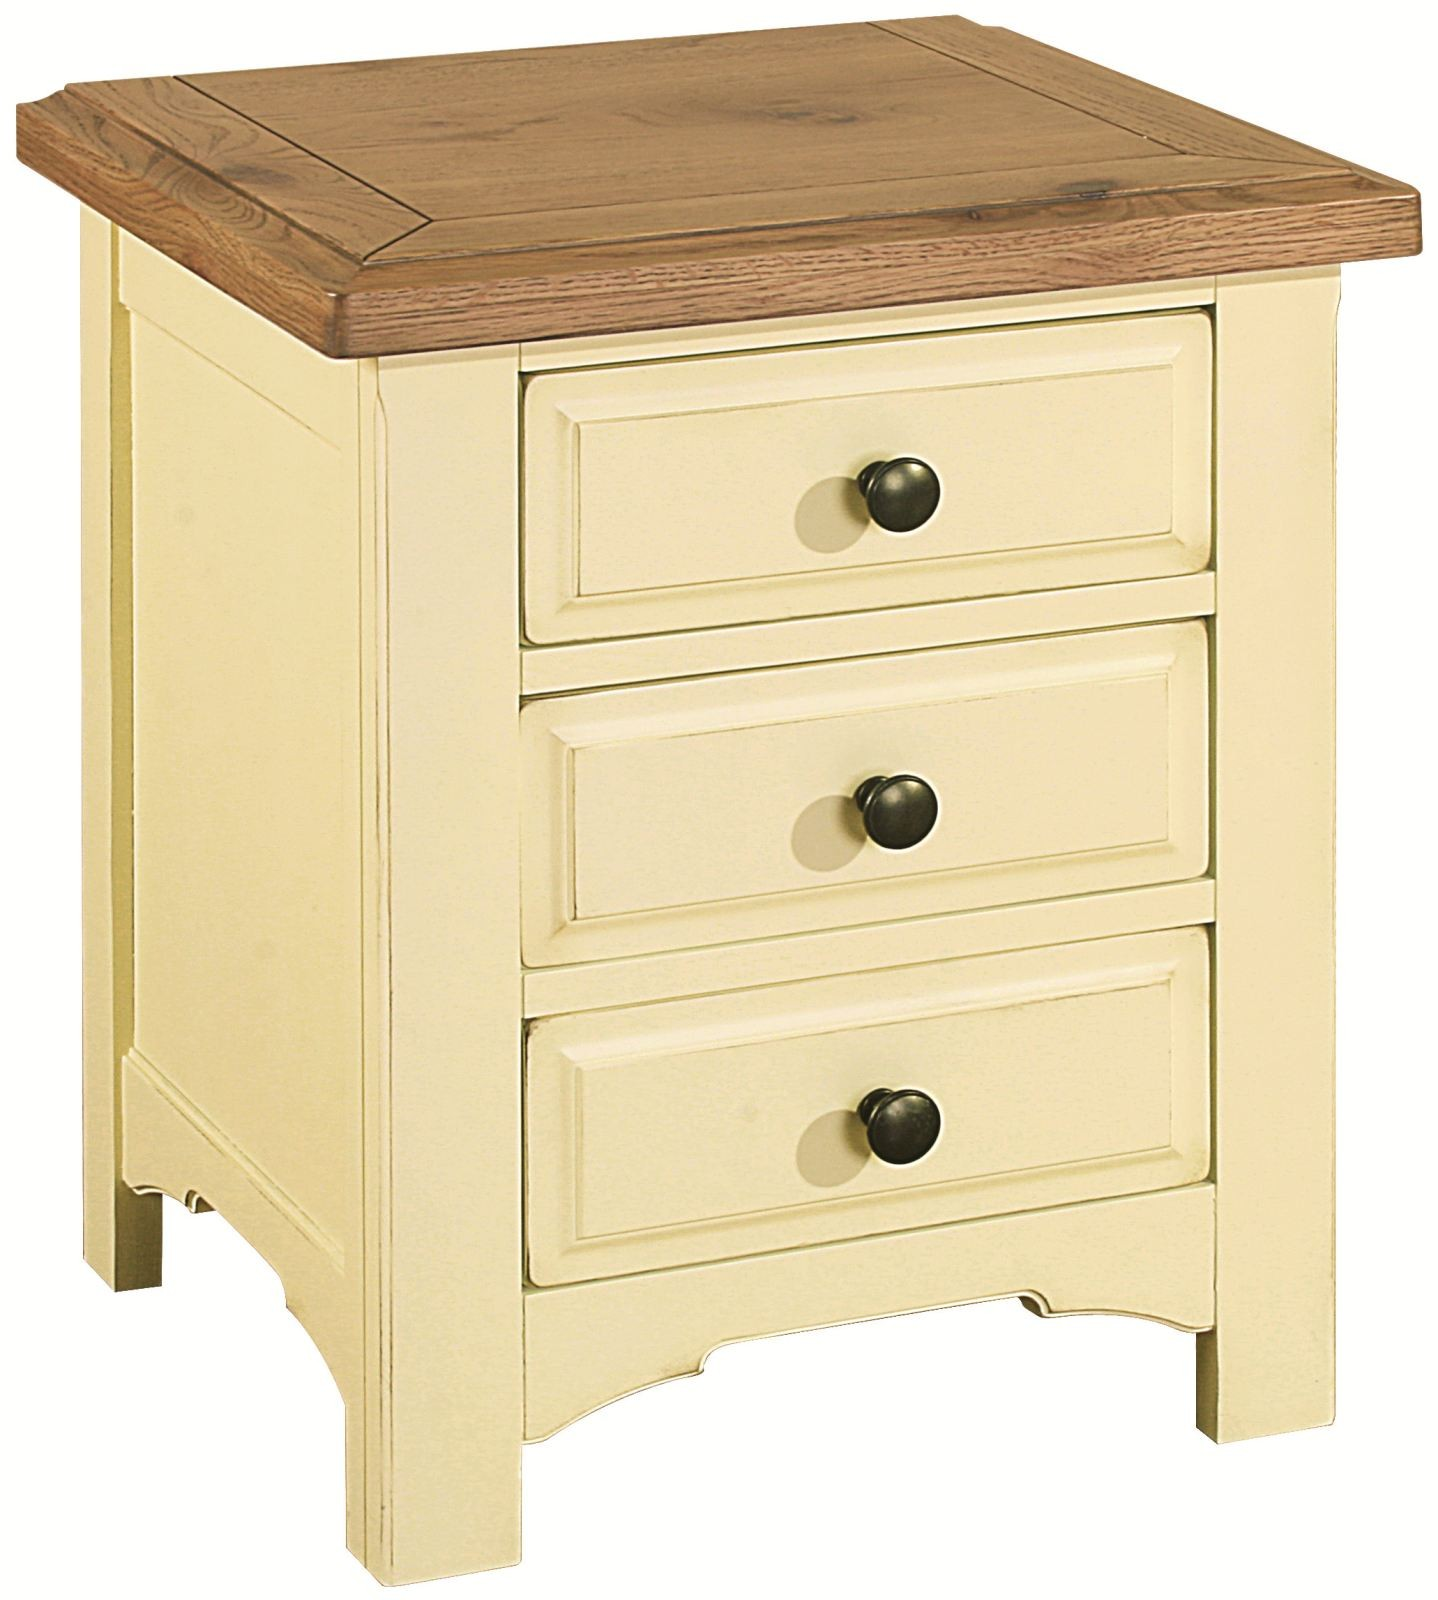 Savannah Country Cream Painted Wooden Bedside Table